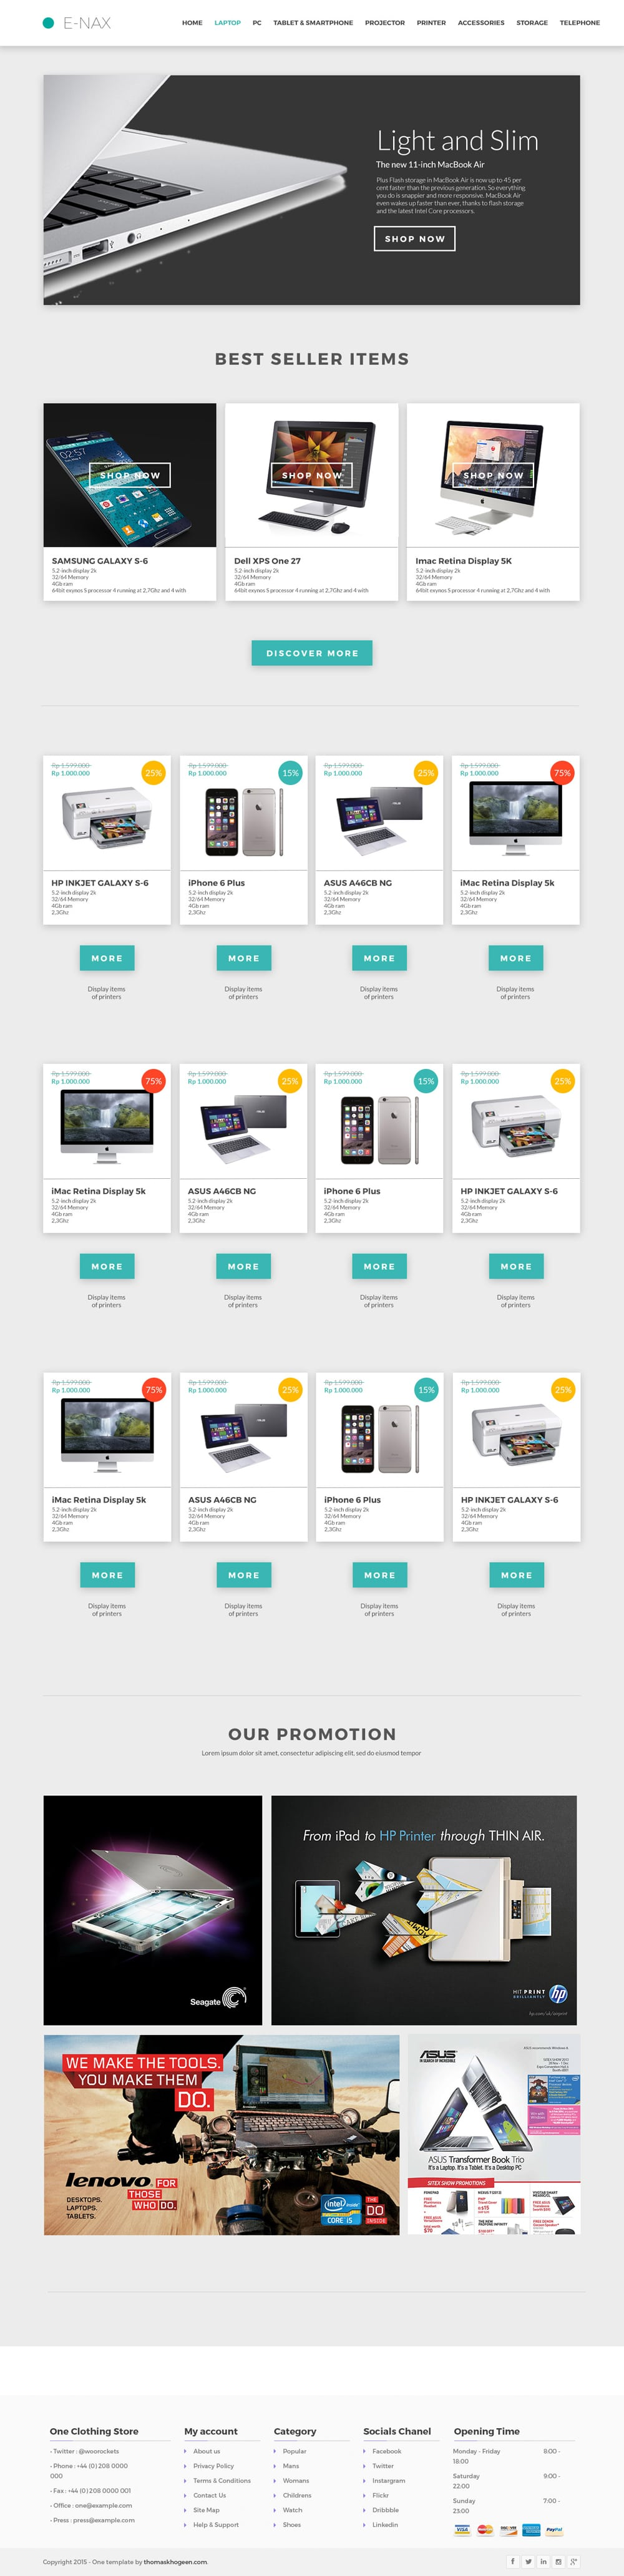 E-NAX Free E-commerce Website Template PSD